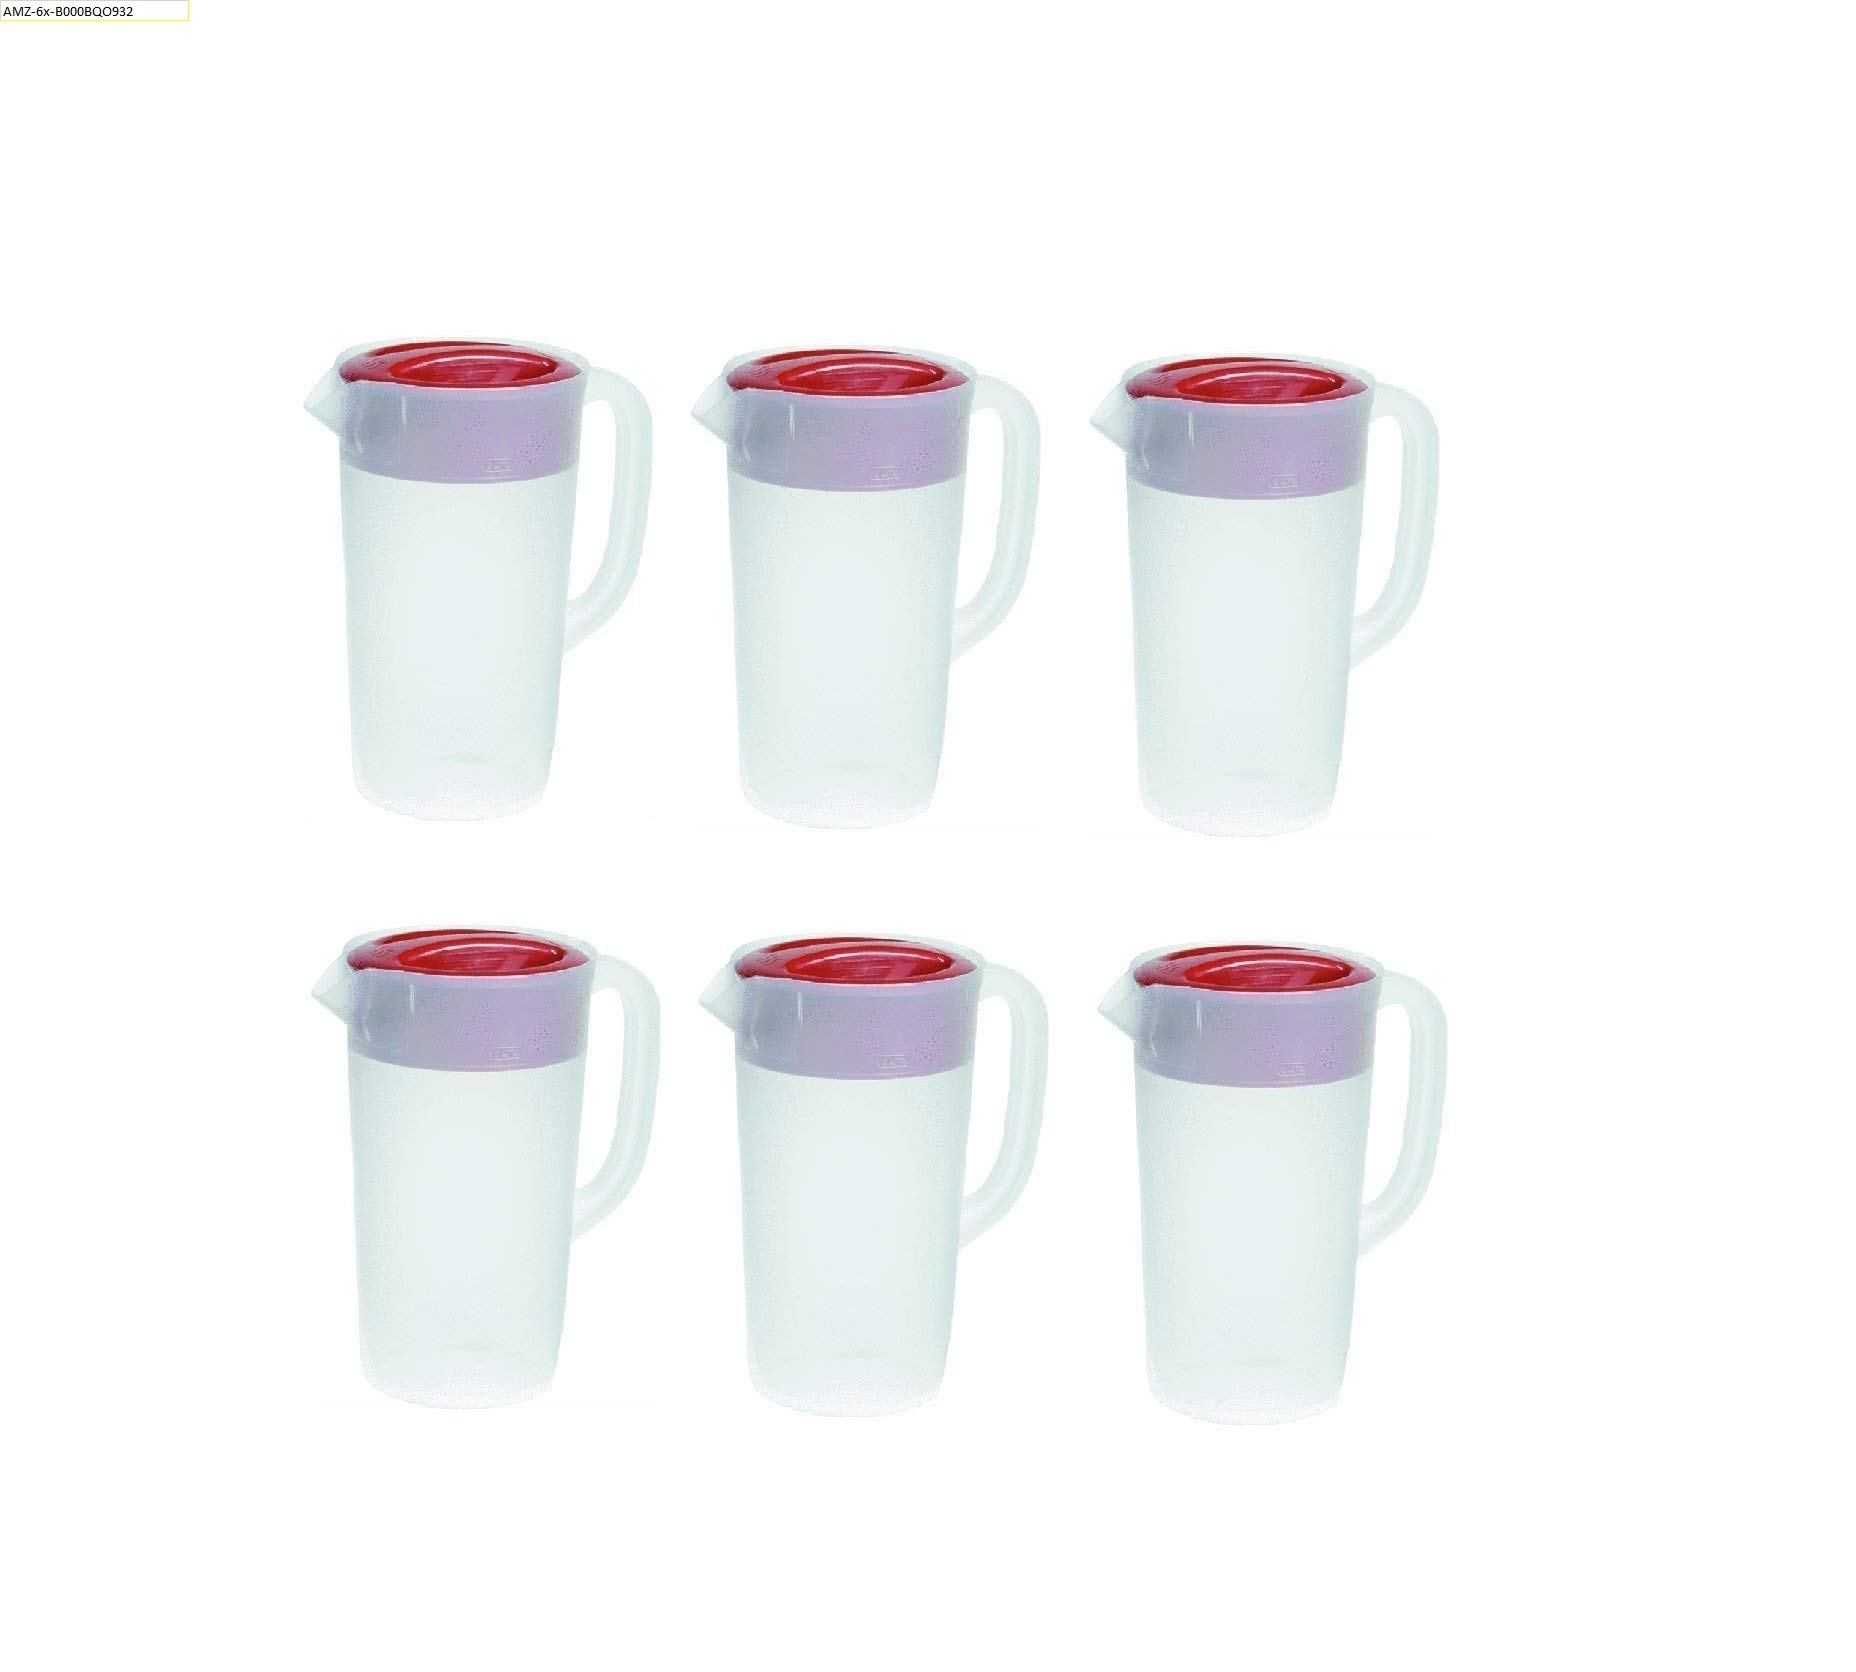 Rubbermaid 30621-4 712395881415 Pitcher 2.25 Qt-White with Red Cover Pack of 6, 6 Pack,